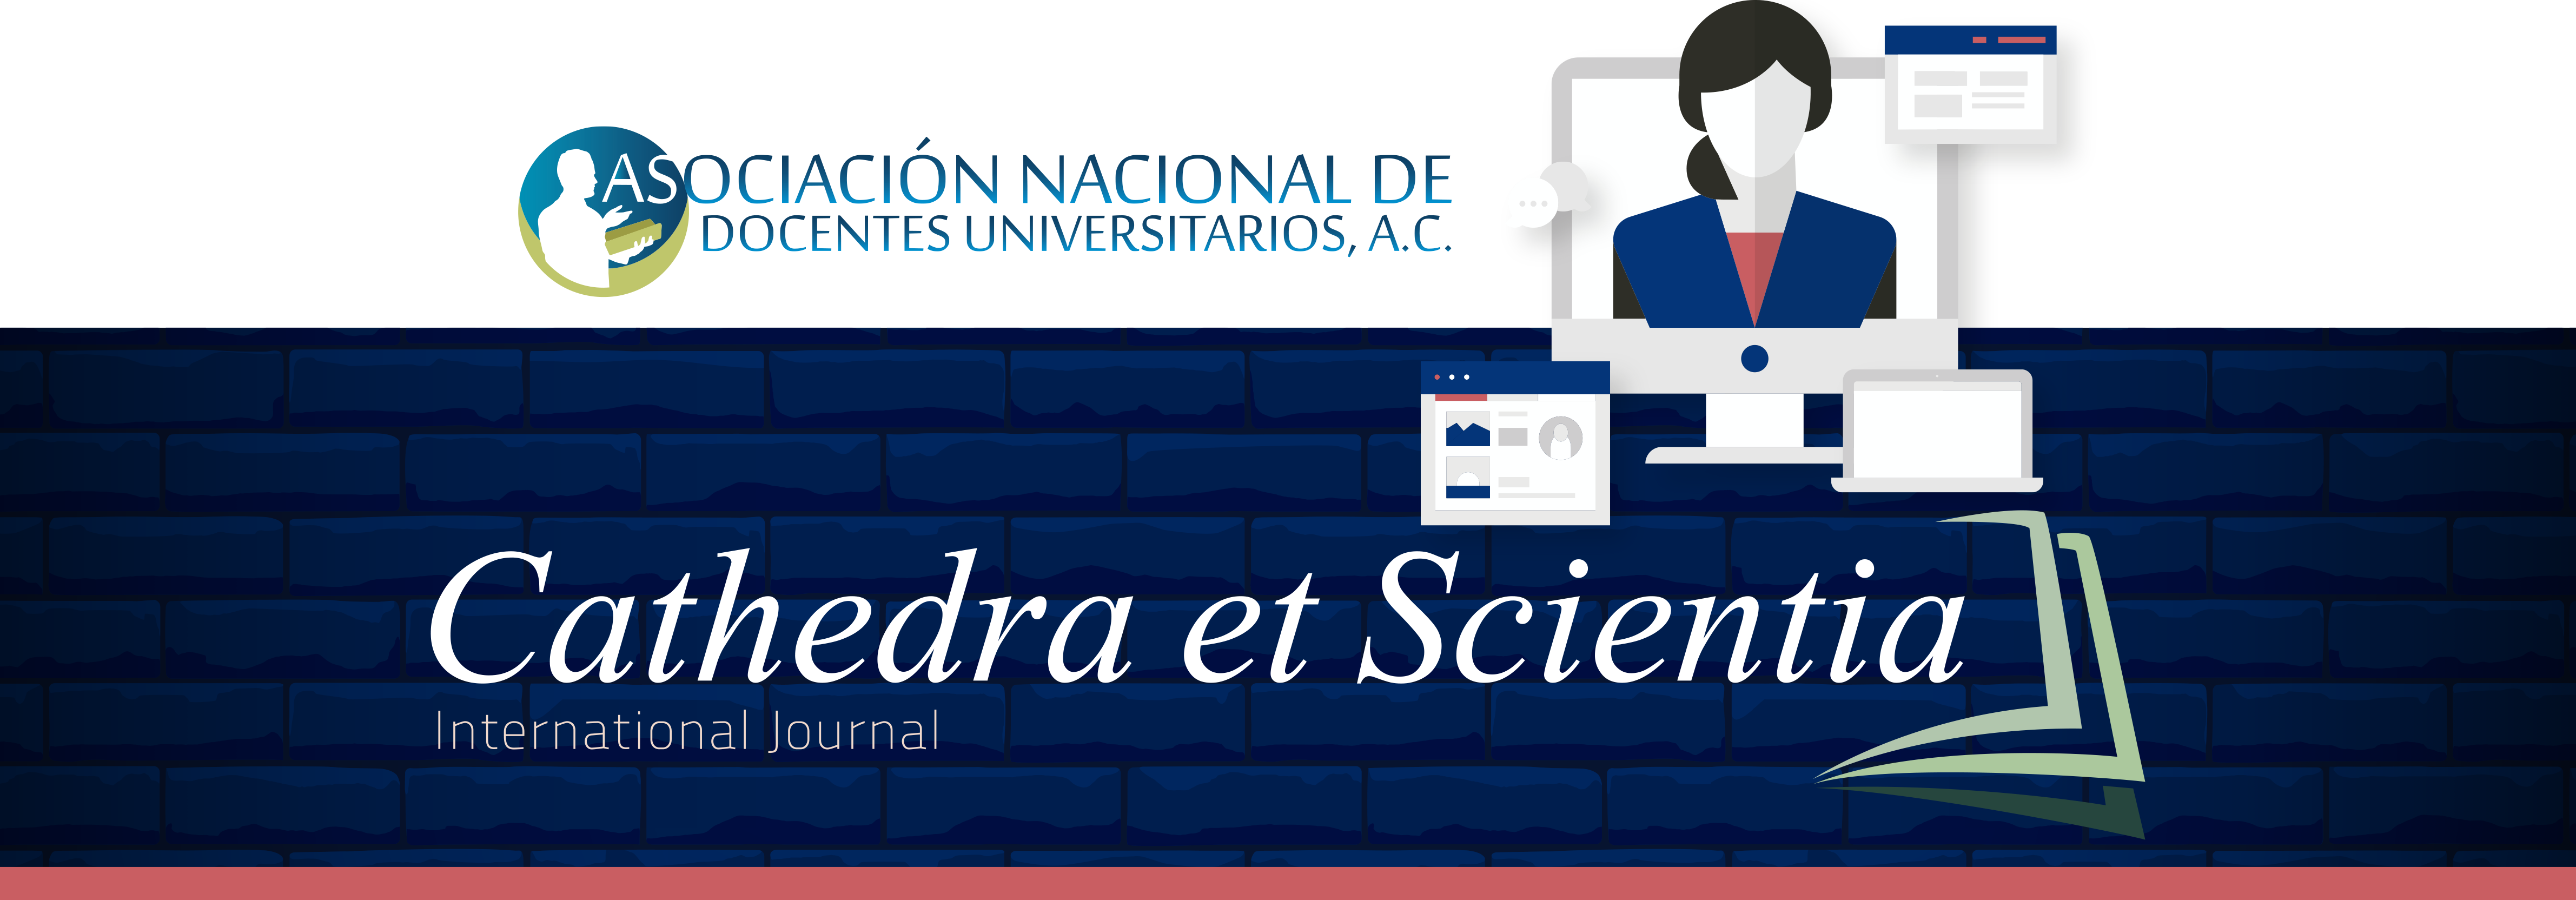 cathedra_et_scientia_international_journal_encabezado.png